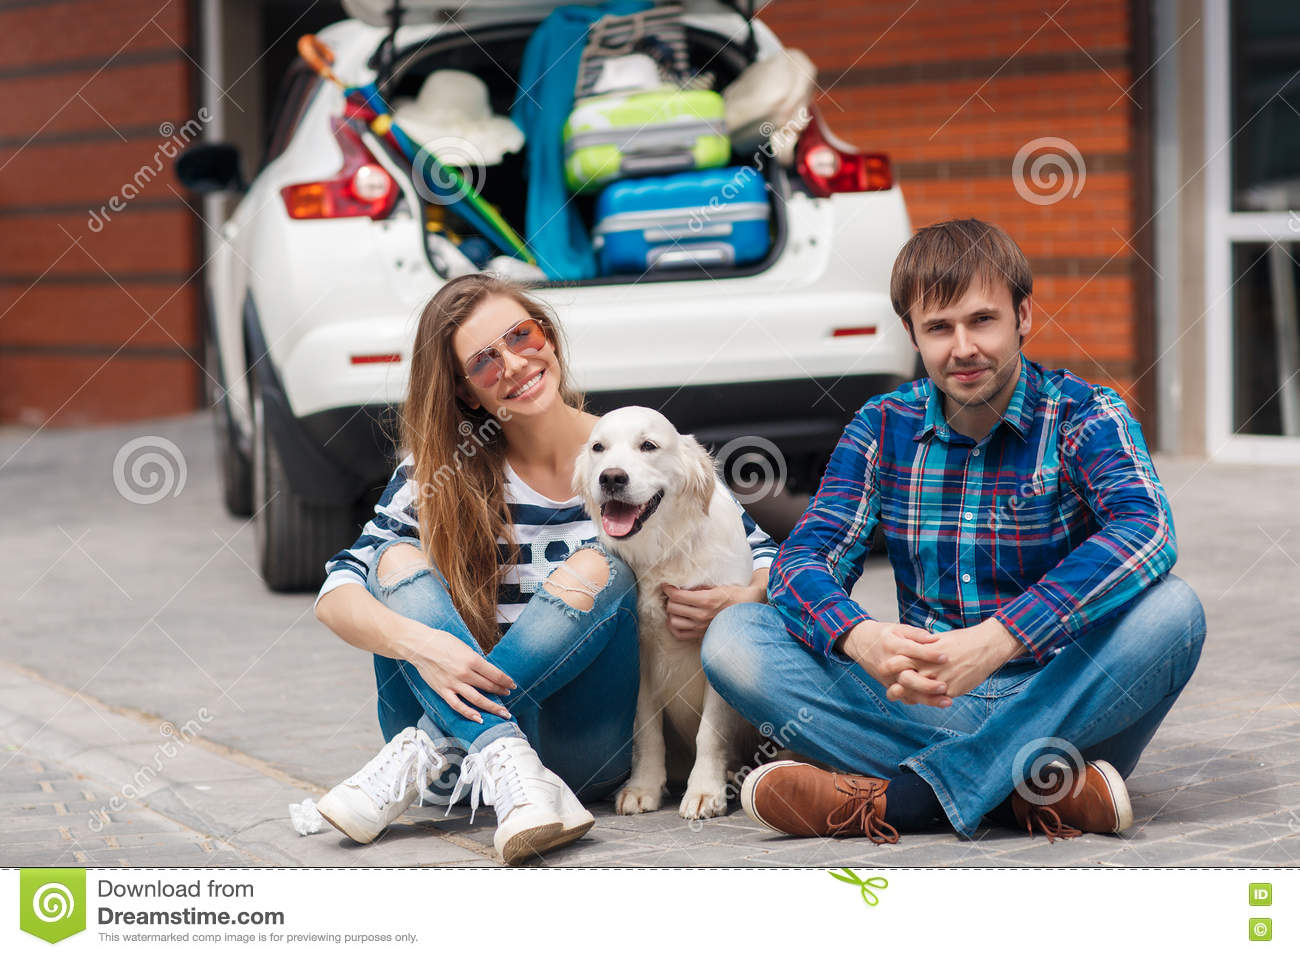 The man and woman with dog by car ready for car trip